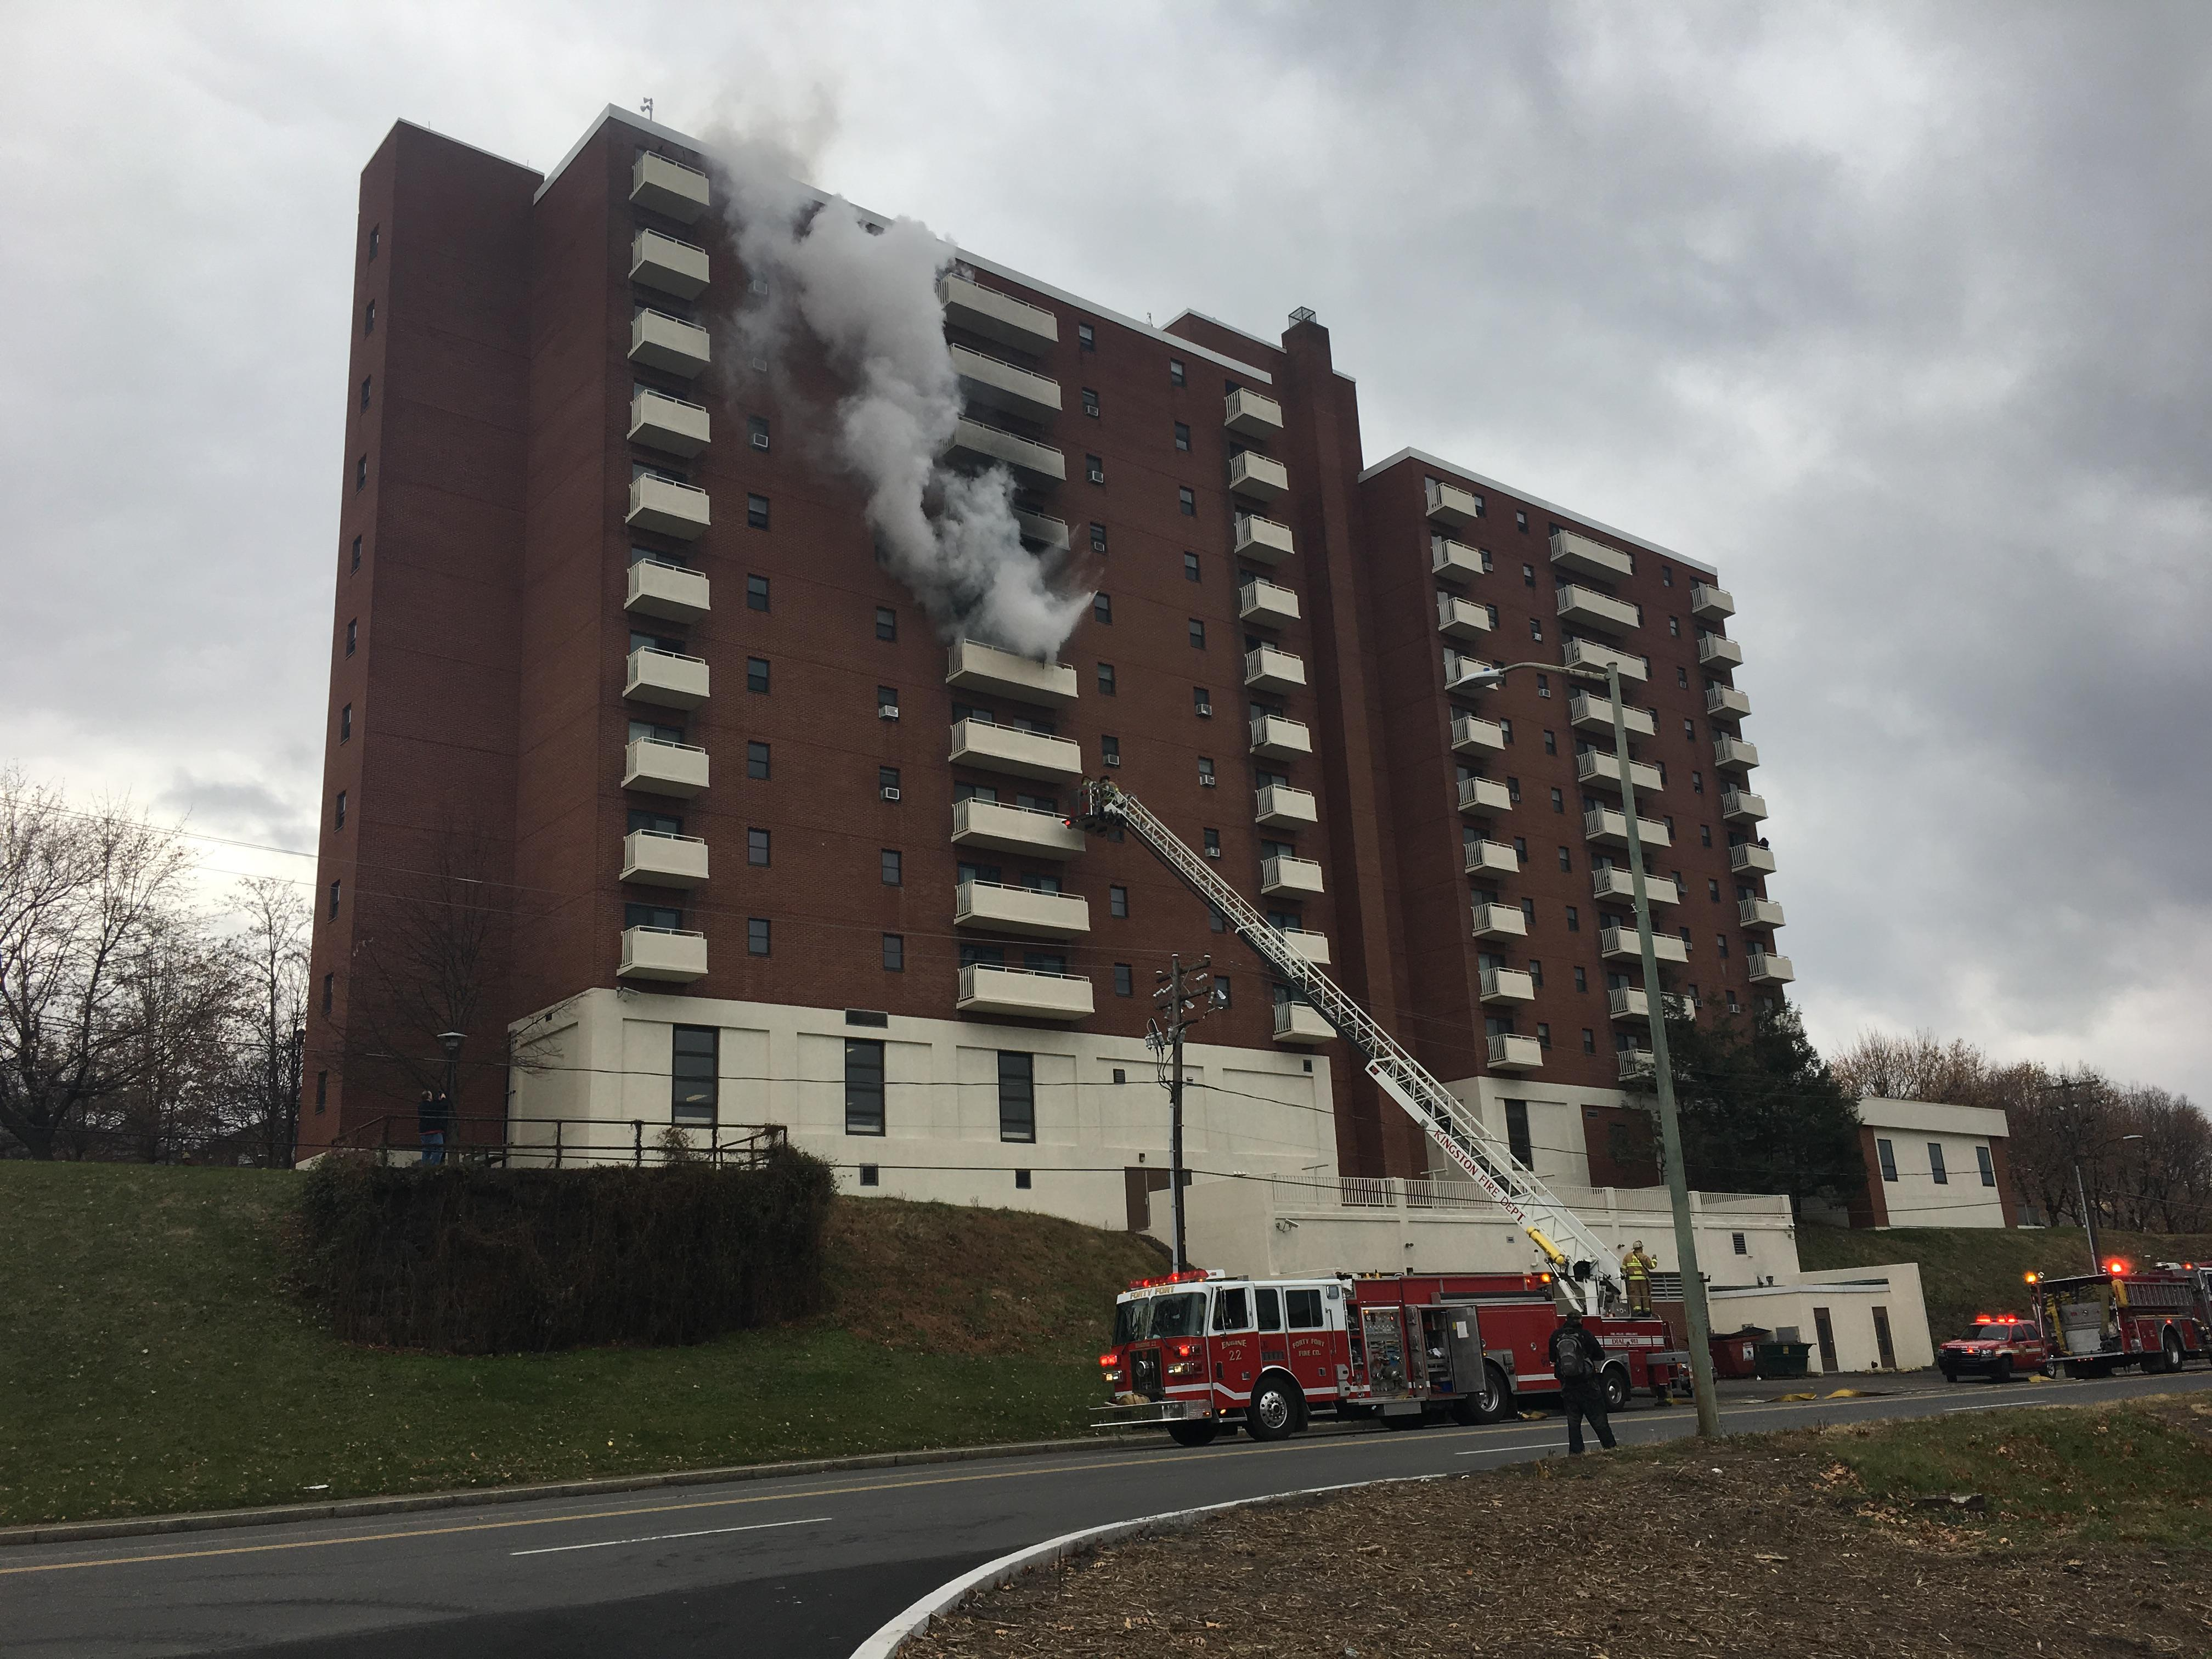 Two dead in Wilkes-Barre apartment fire